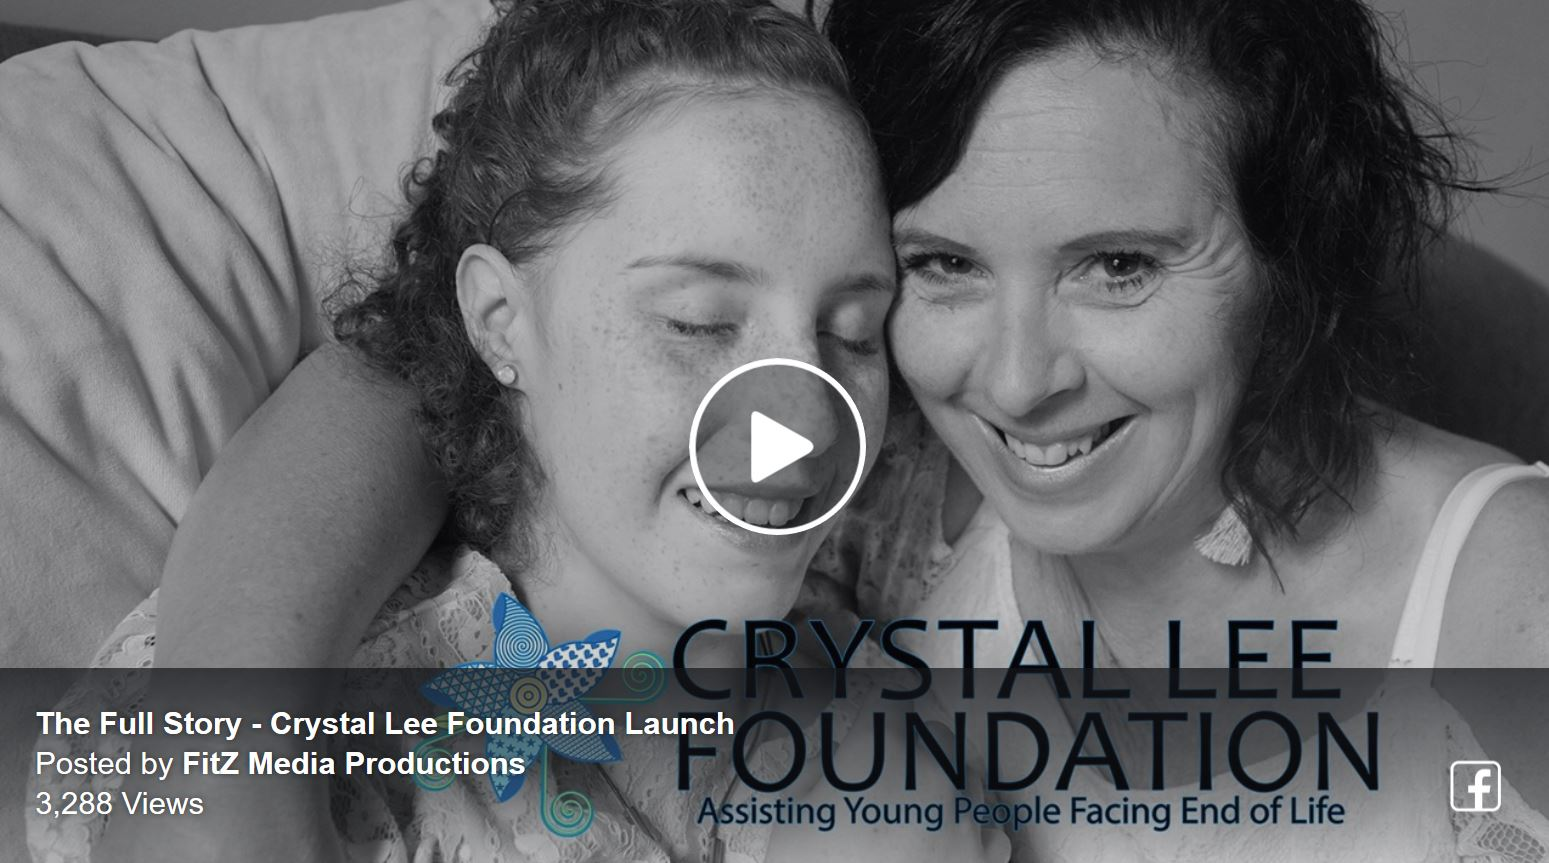 The Crystal Lee Foundation